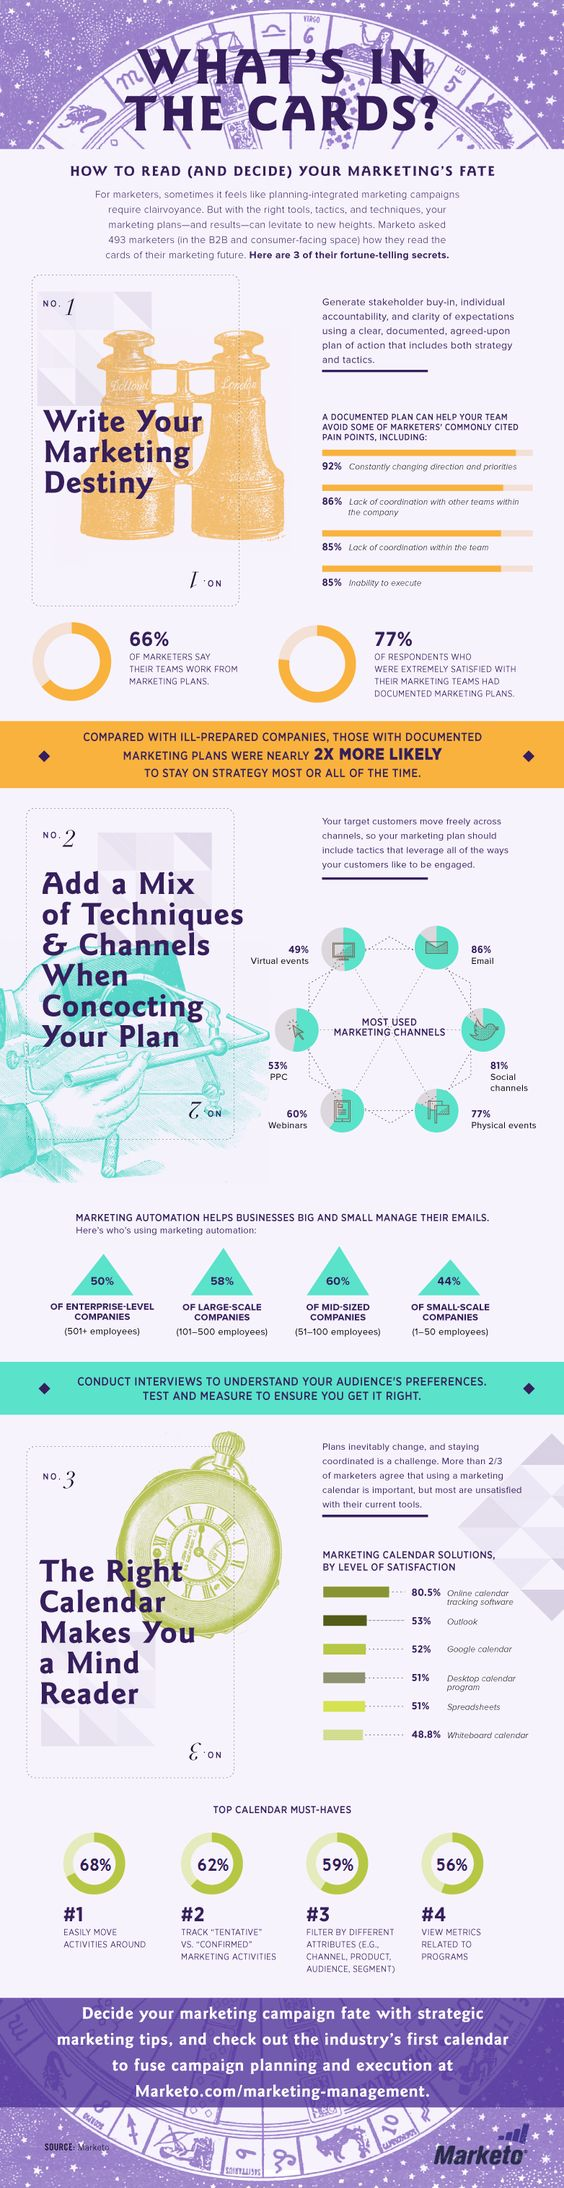 As the end of year approaches, marketers try to predict the future of their programs and campaigns—not a small task. This infographic, created with Marketo, visualizes the results of interviews with more than 400 marketers, revealing their strategies for marketing success.